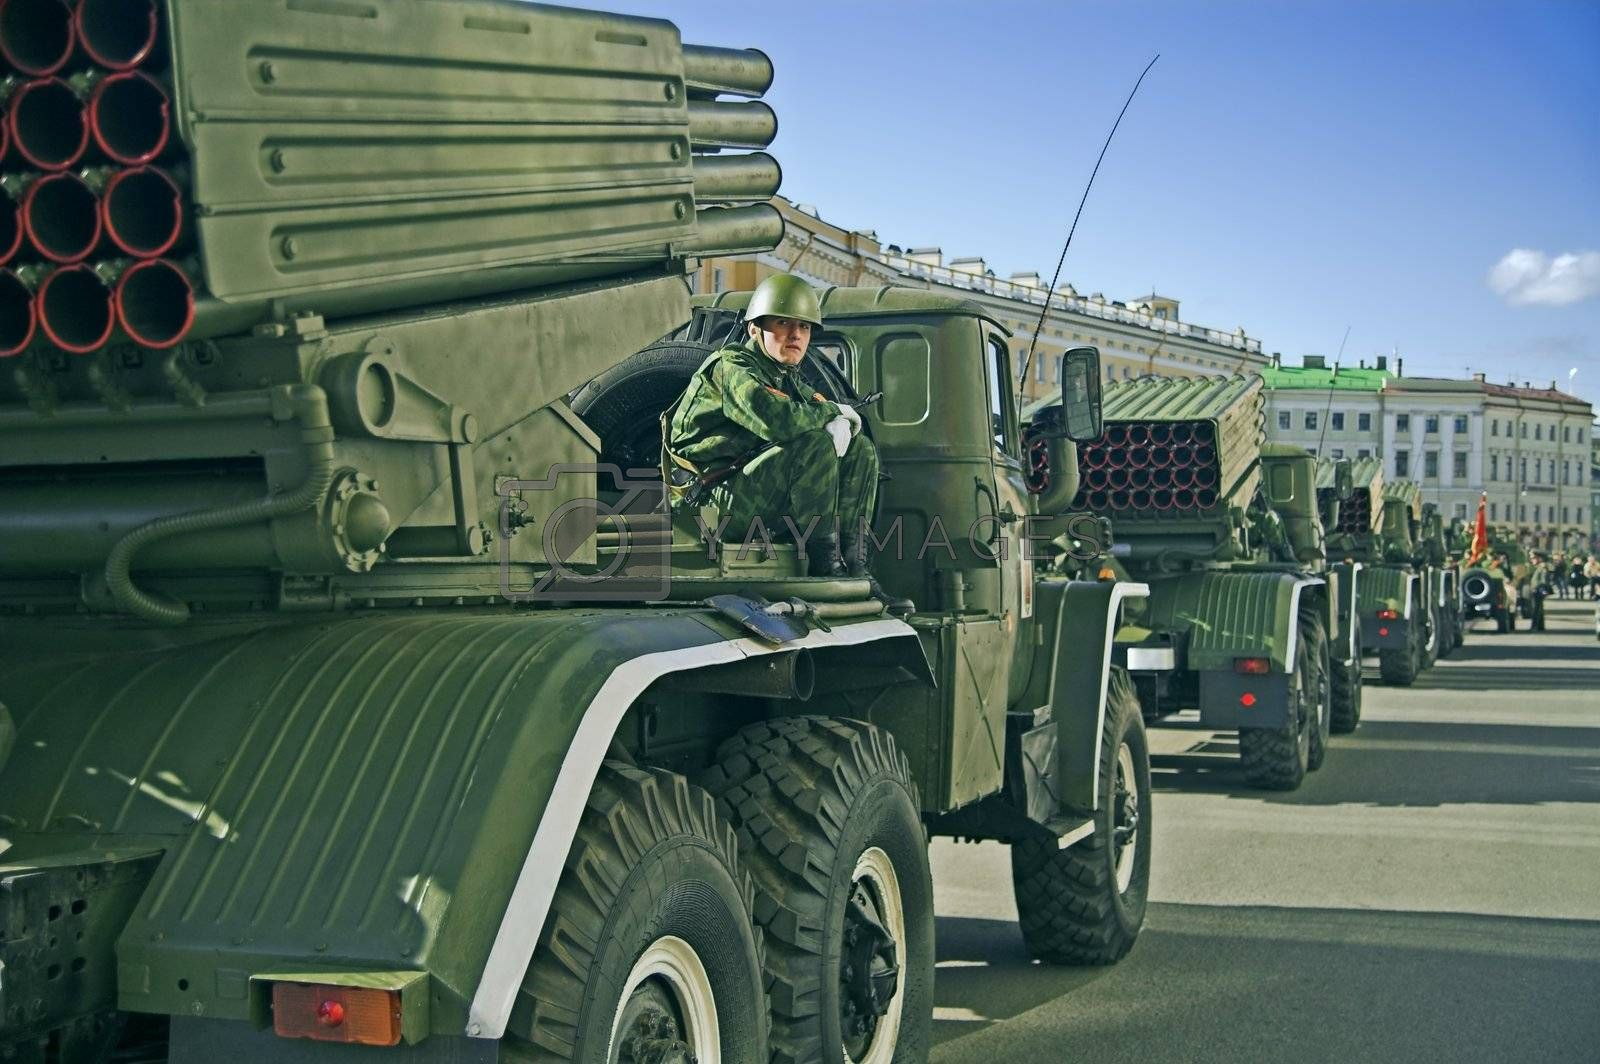 ST PETERSBURG, RUSSIA-MAY 8, 2008: Missile vehicles lined for a rehearsal before the celebration of World War II Victory Day on May 9, 2008.